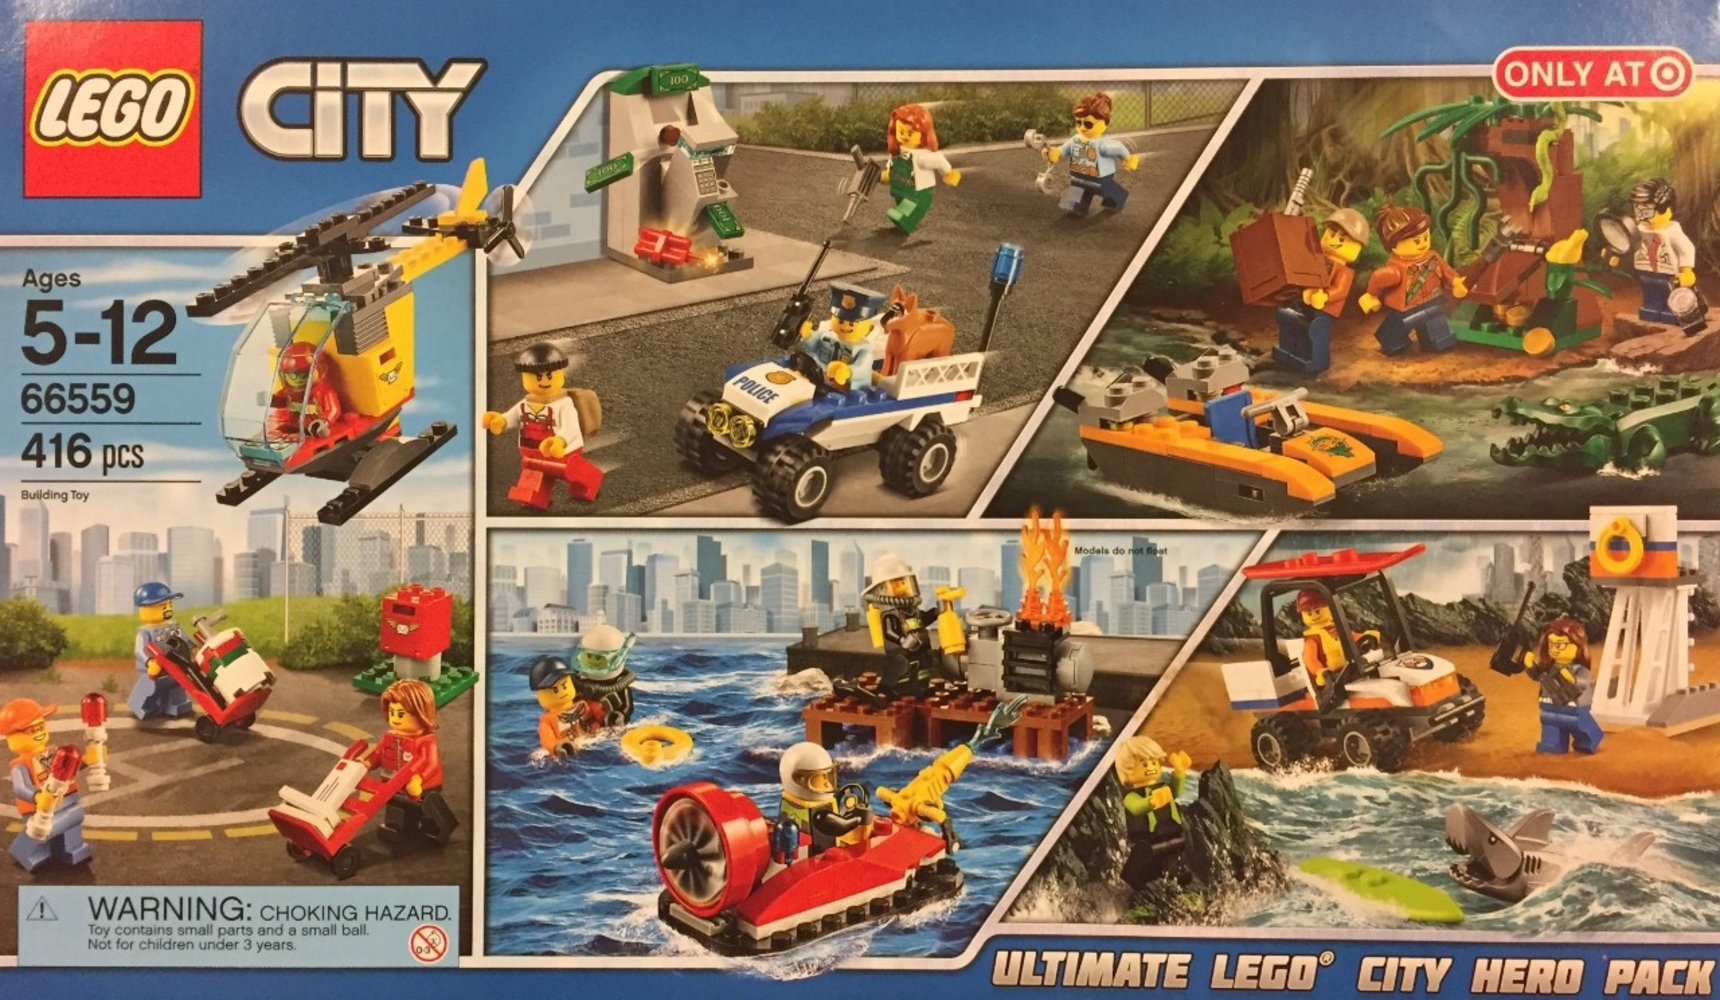 Ultimate LEGO City Hero Pack